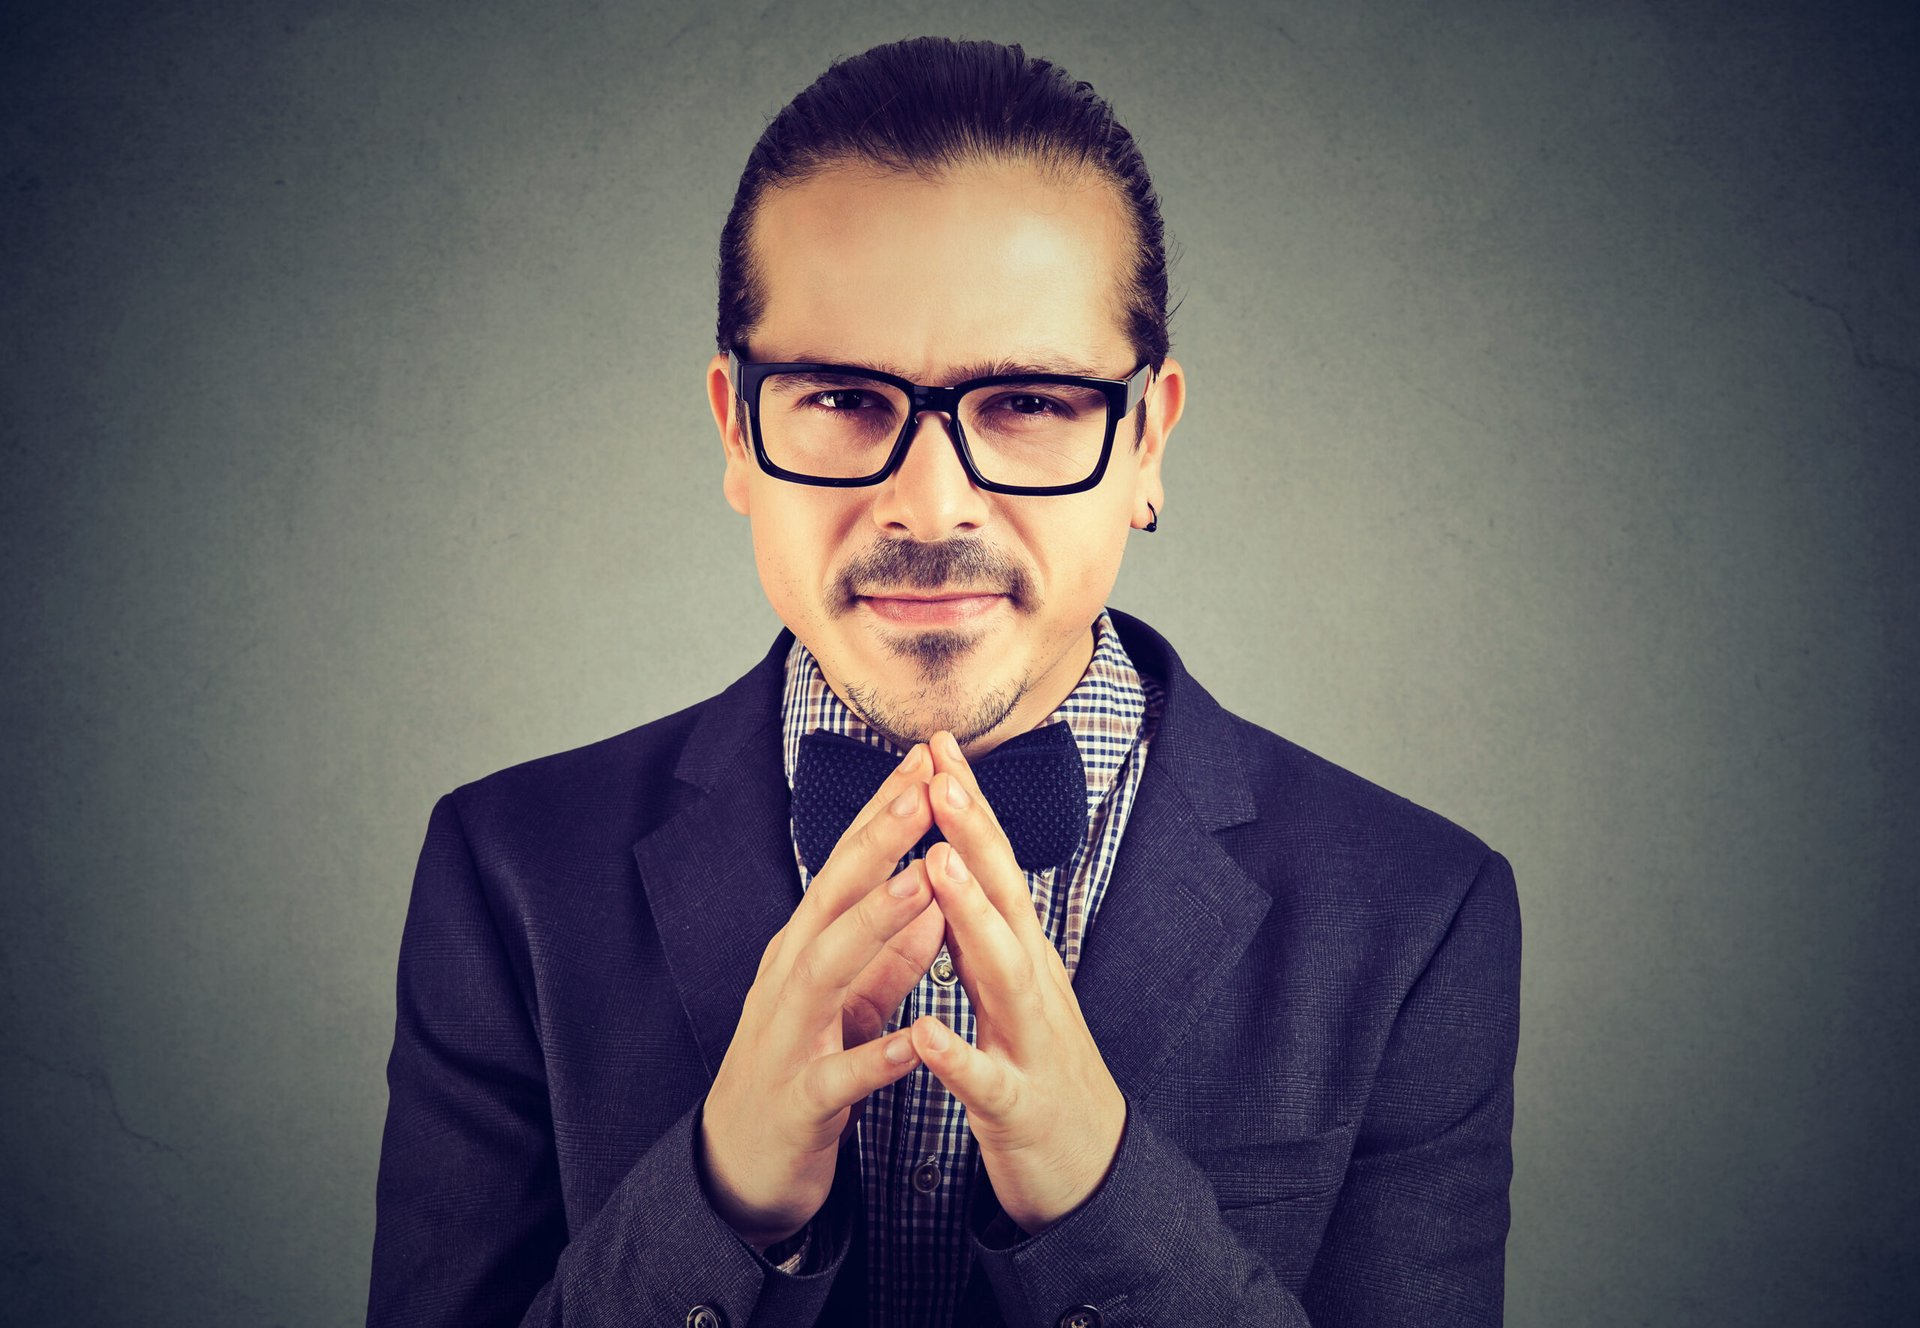 Sly businessman in glasses